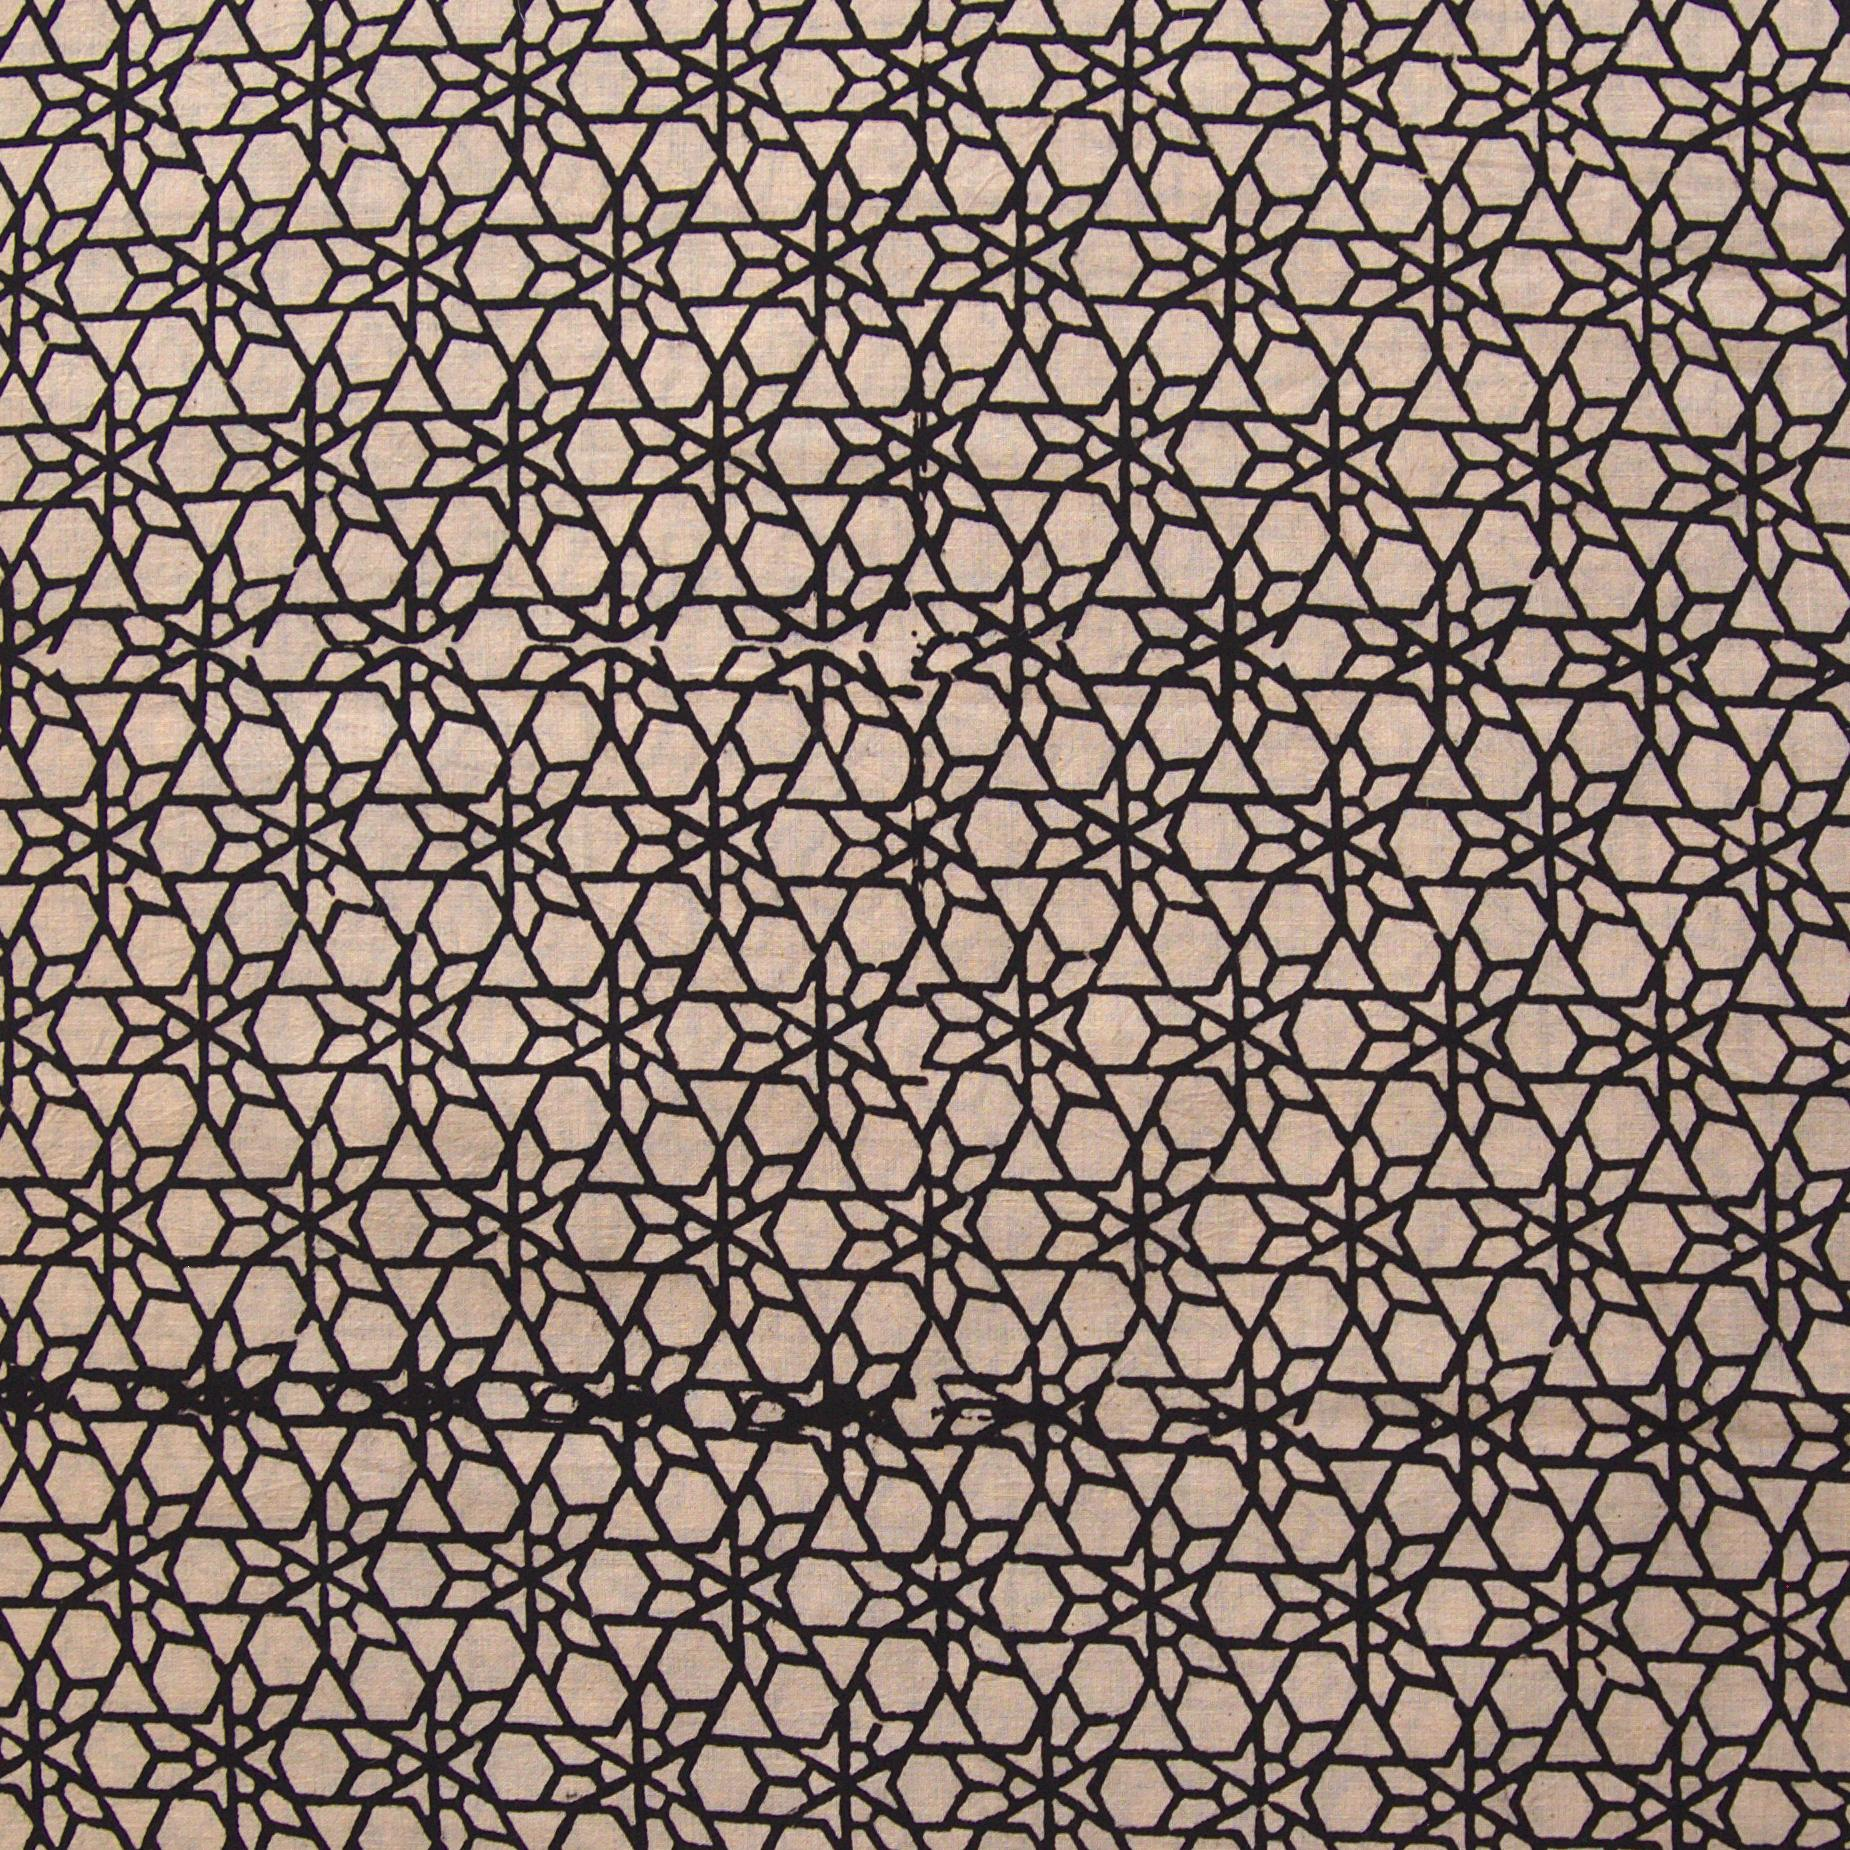 Block Printed Fabric, 100% Cotton, Ajrak Design: Beige Base, Black Shooting Star. Close Up